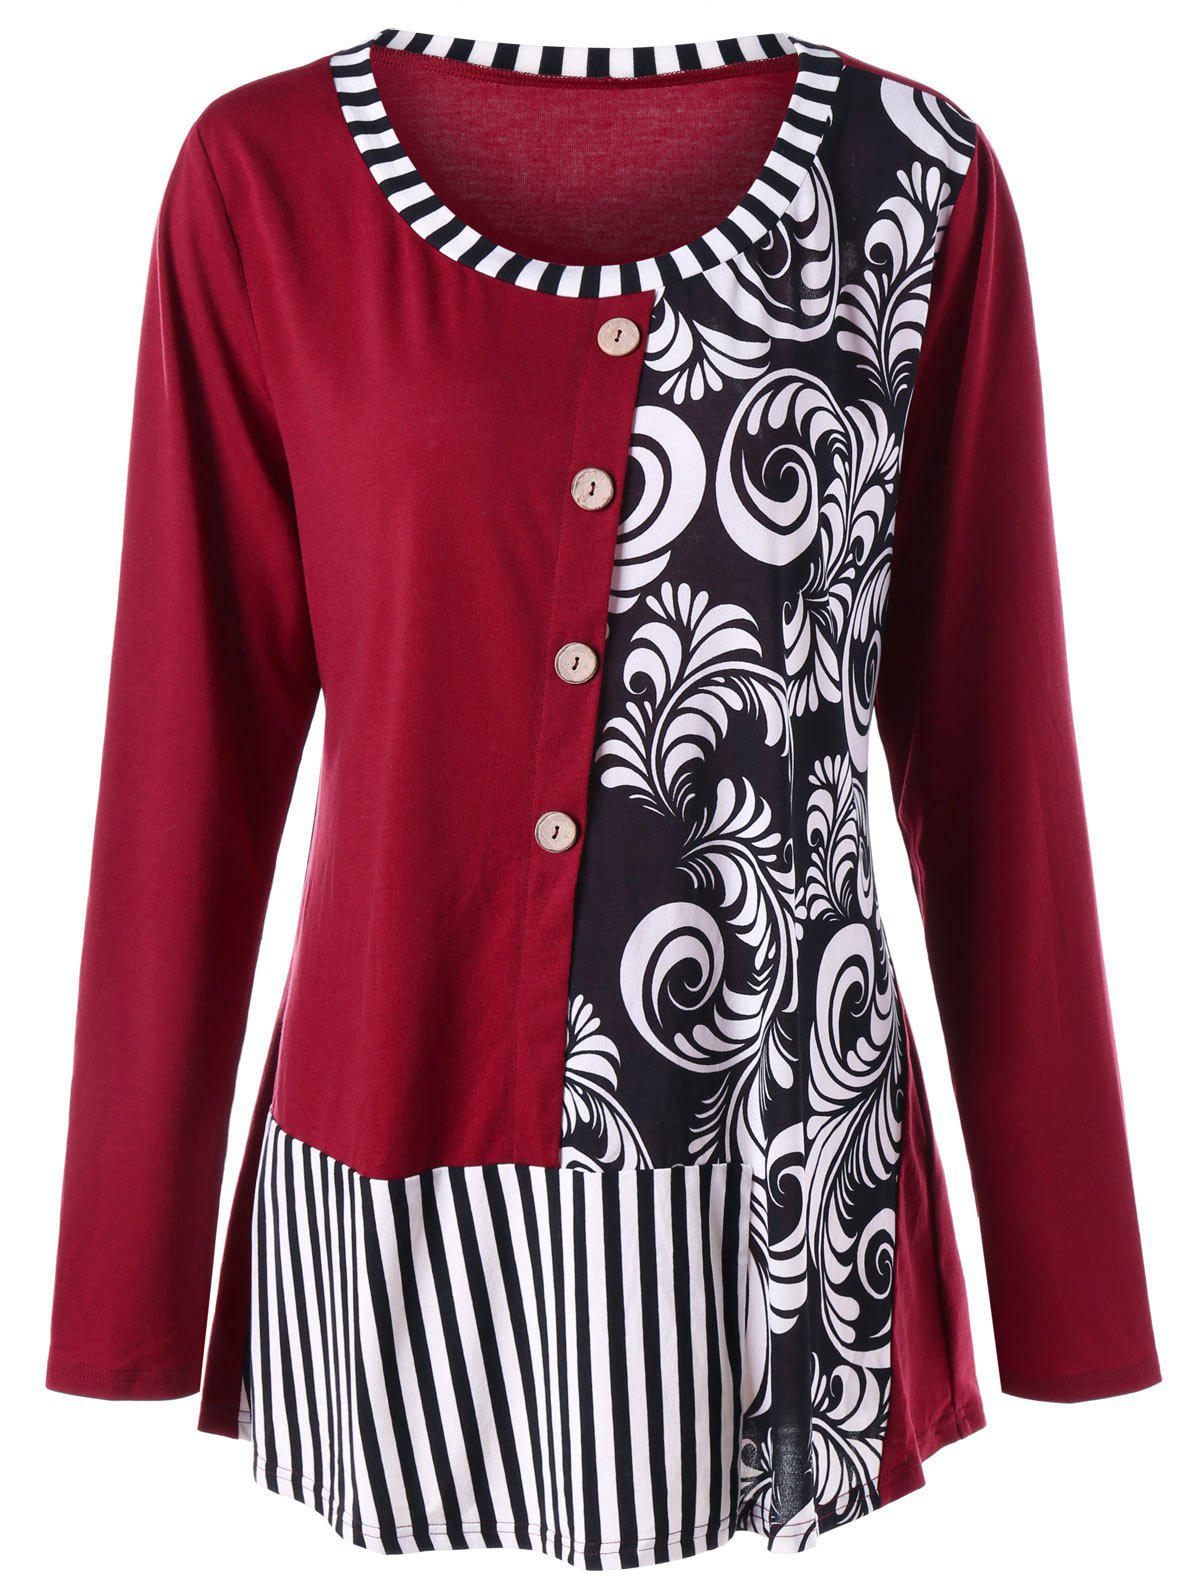 Plus Size Striped Bandana Floral Top - WINE RED XL